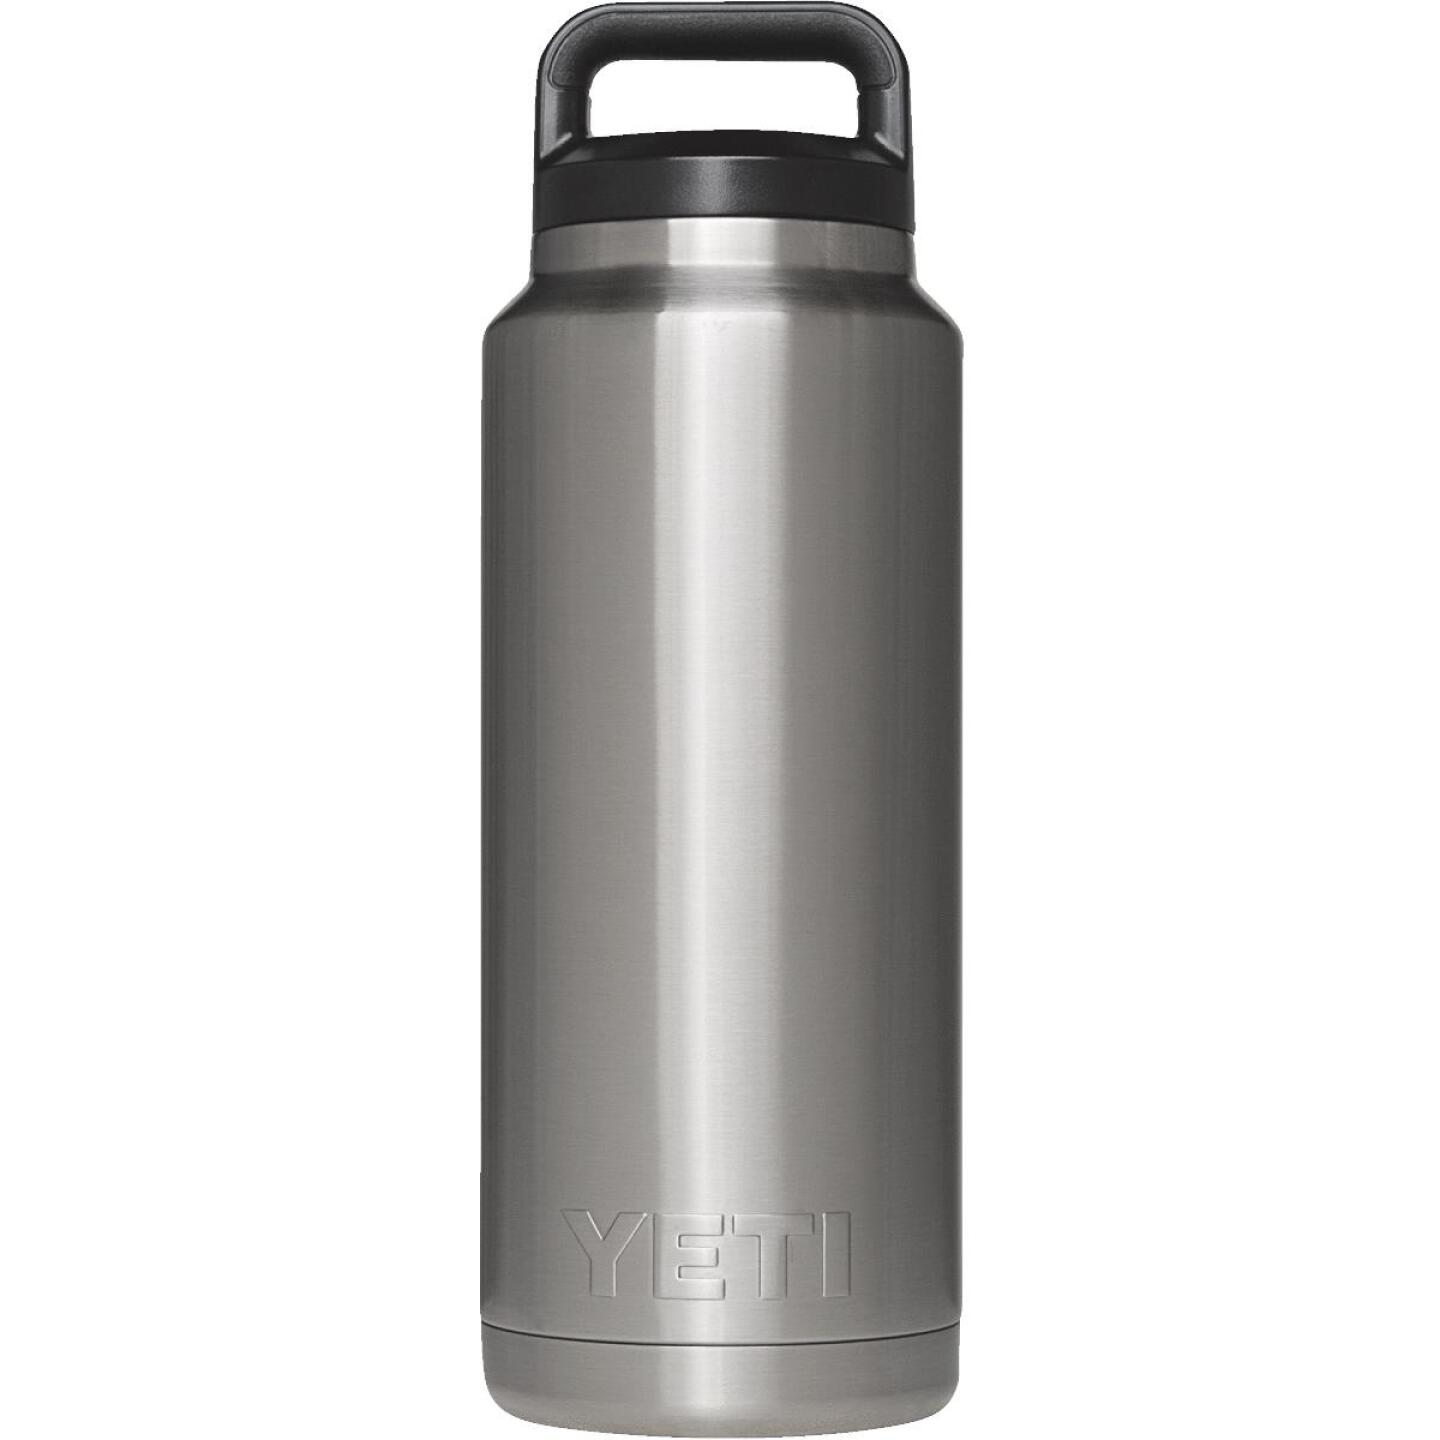 Yeti Rambler 36 Oz. Silver Stainless Steel Insulated Vacuum Bottle Image 1